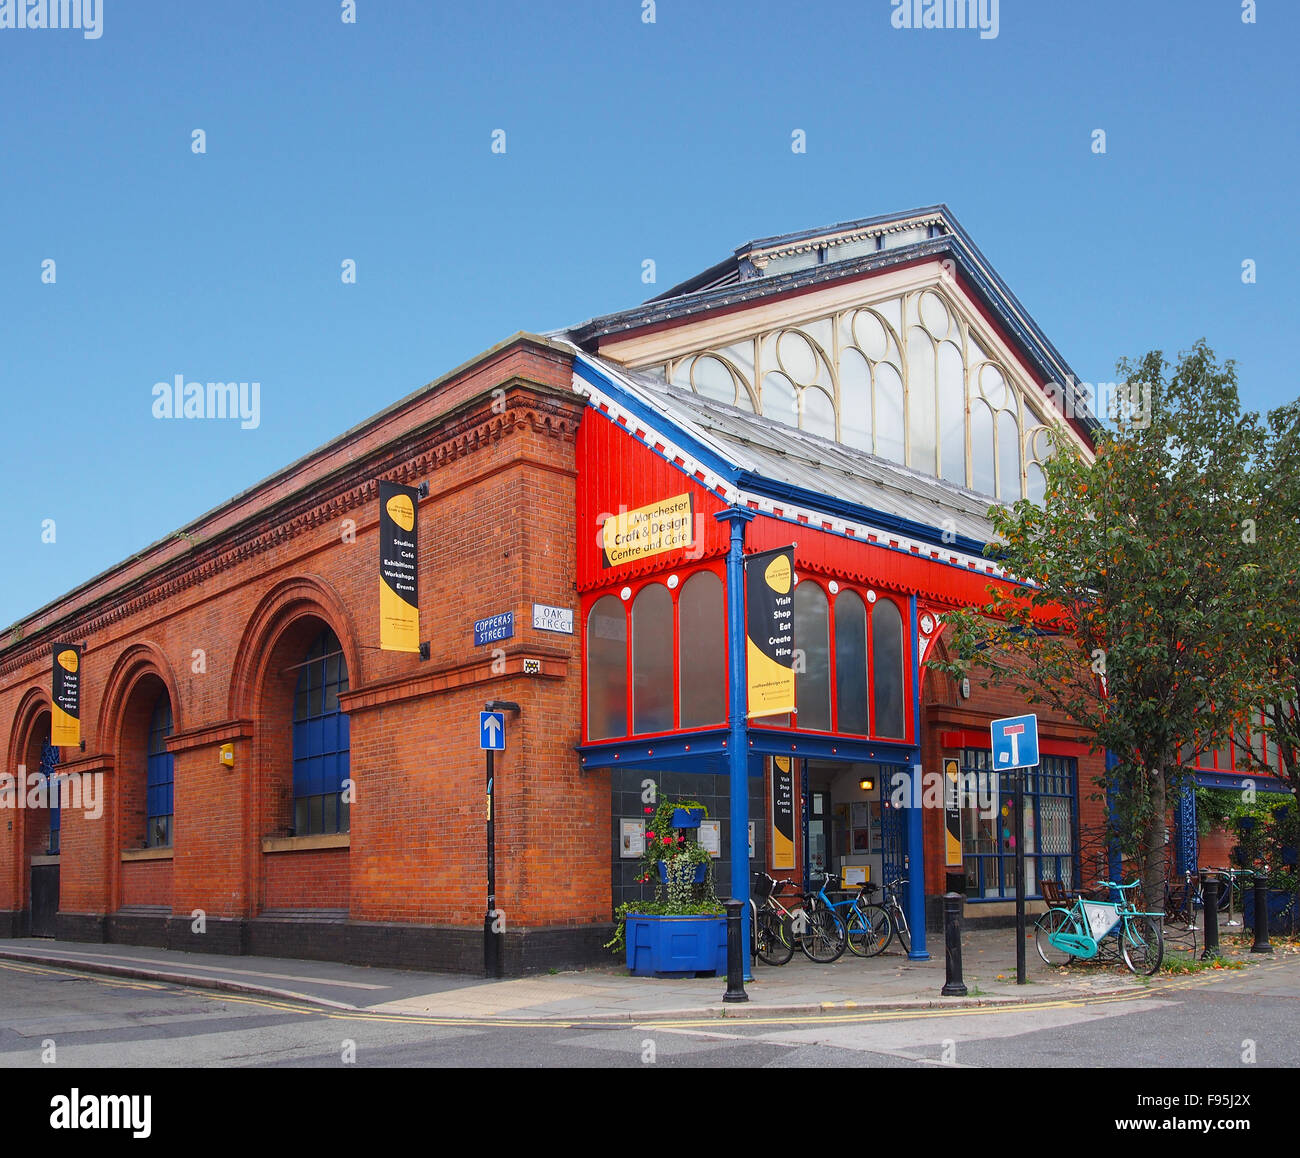 Exterior of the Manchester Crafts and Design Centre on Oak Street, in the Norther Quarter of Manchester, UK. Stock Photo